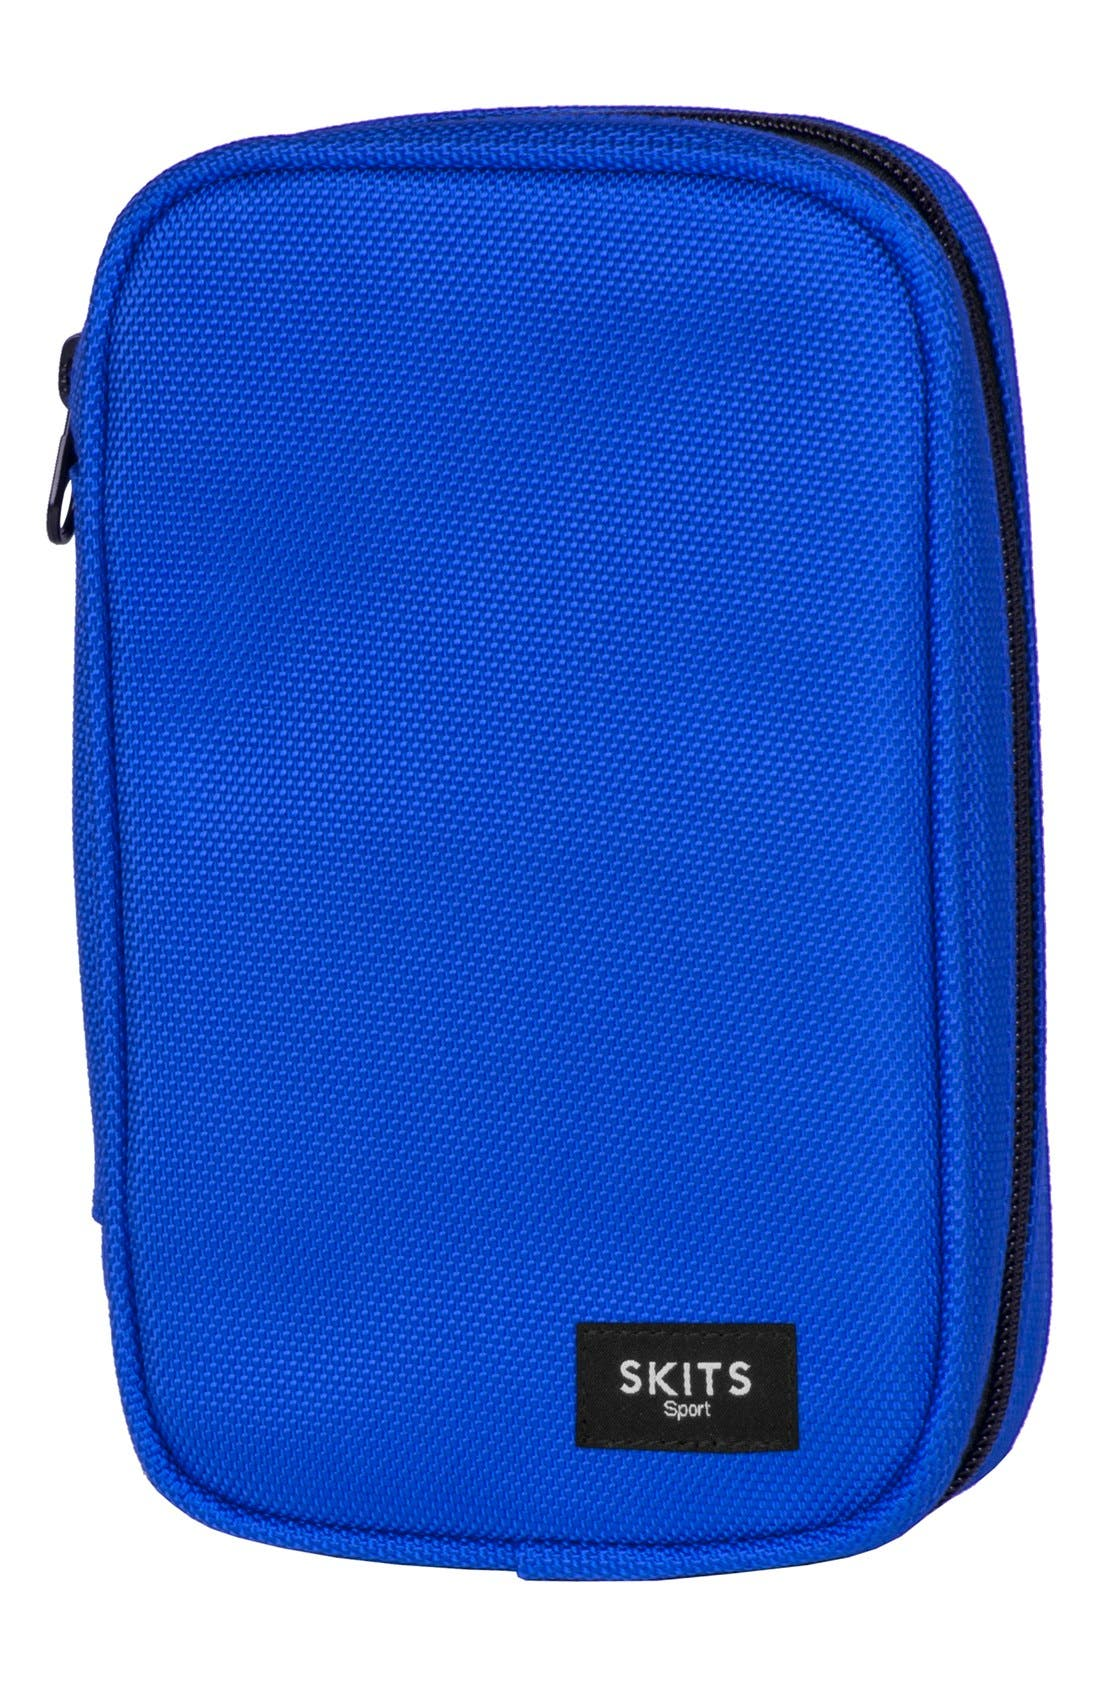 SKITS 'Clever - Sport Poly' Tech Case